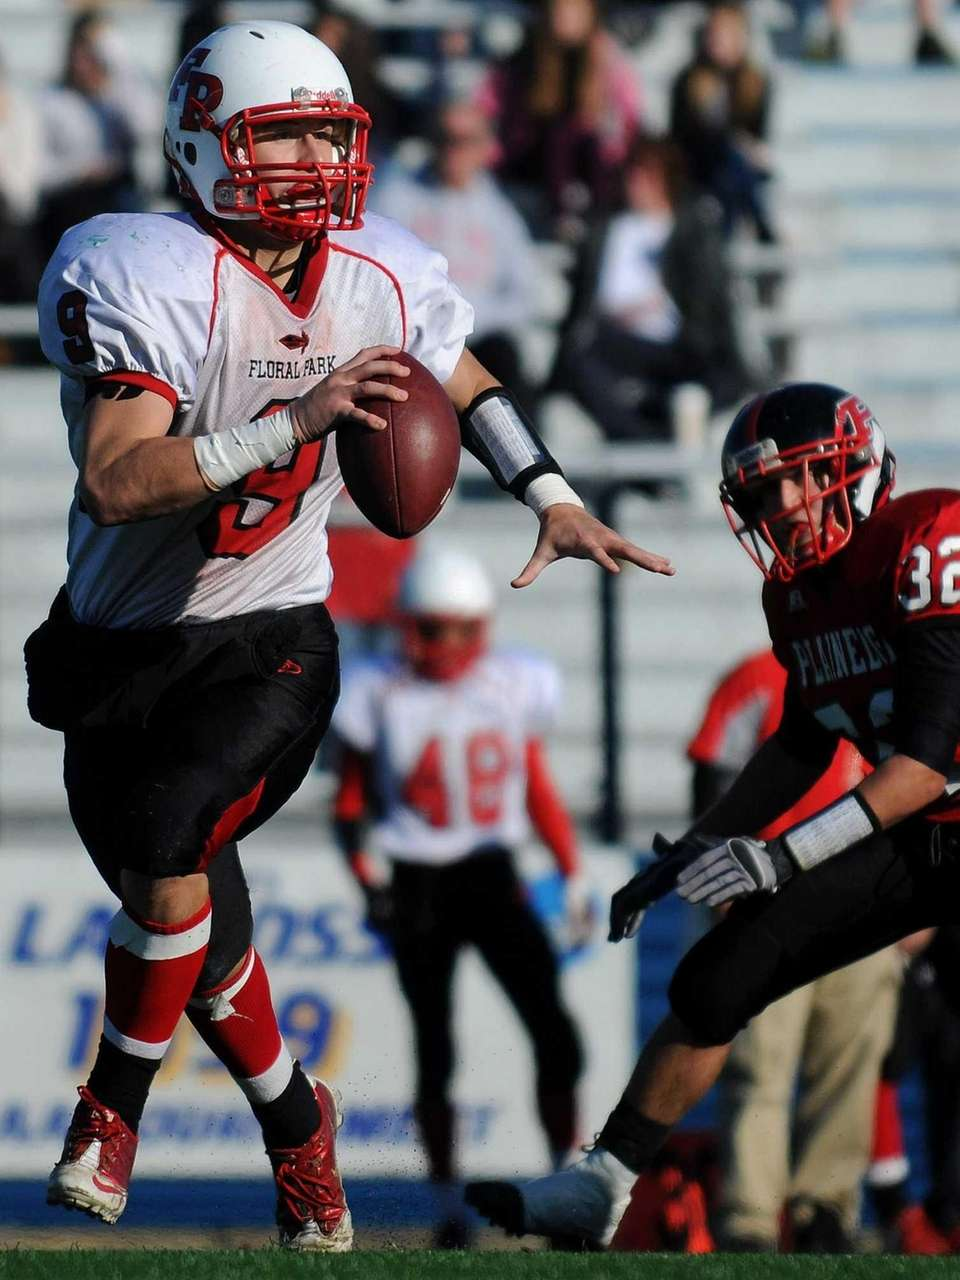 Floral Park quarterback Connor Vidasolo looks for an